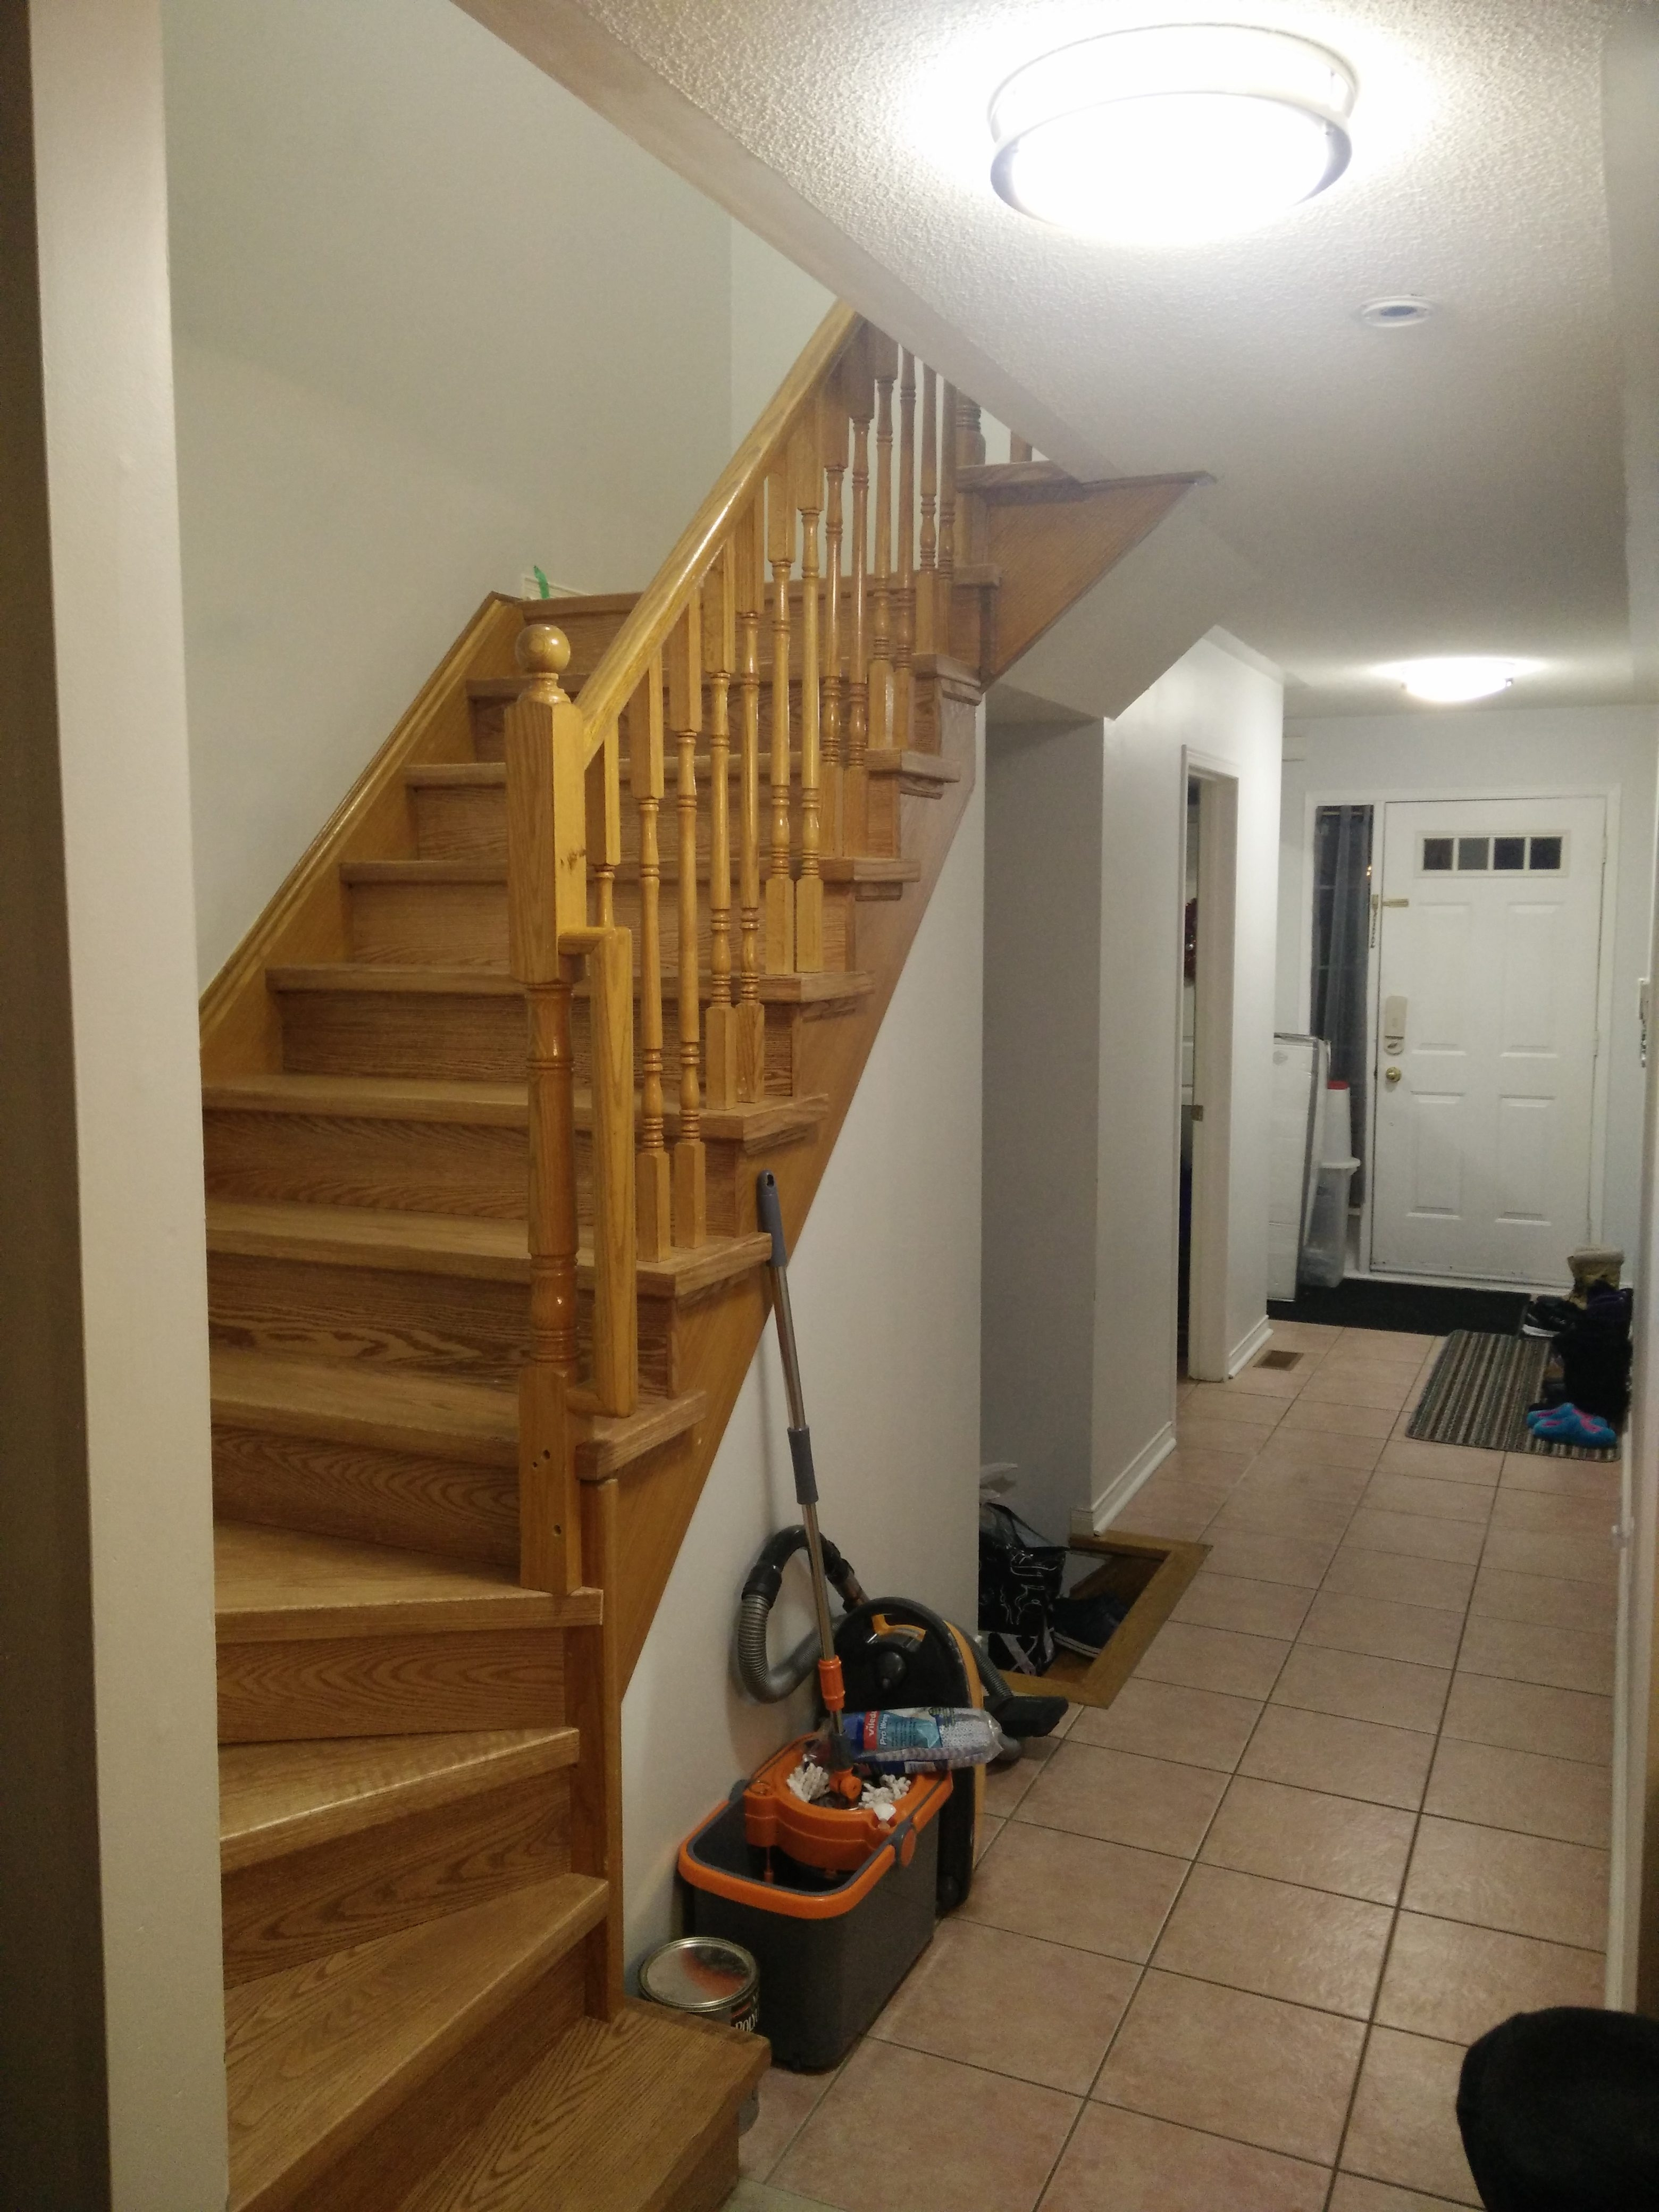 How Much Does It Cost To Change Stairs From Carpet To Wood | Redoing Carpeted Stairs To Wood | Hardwood Floors | Stair Tread | Stair Risers | Stair Case | Staircase Remodel